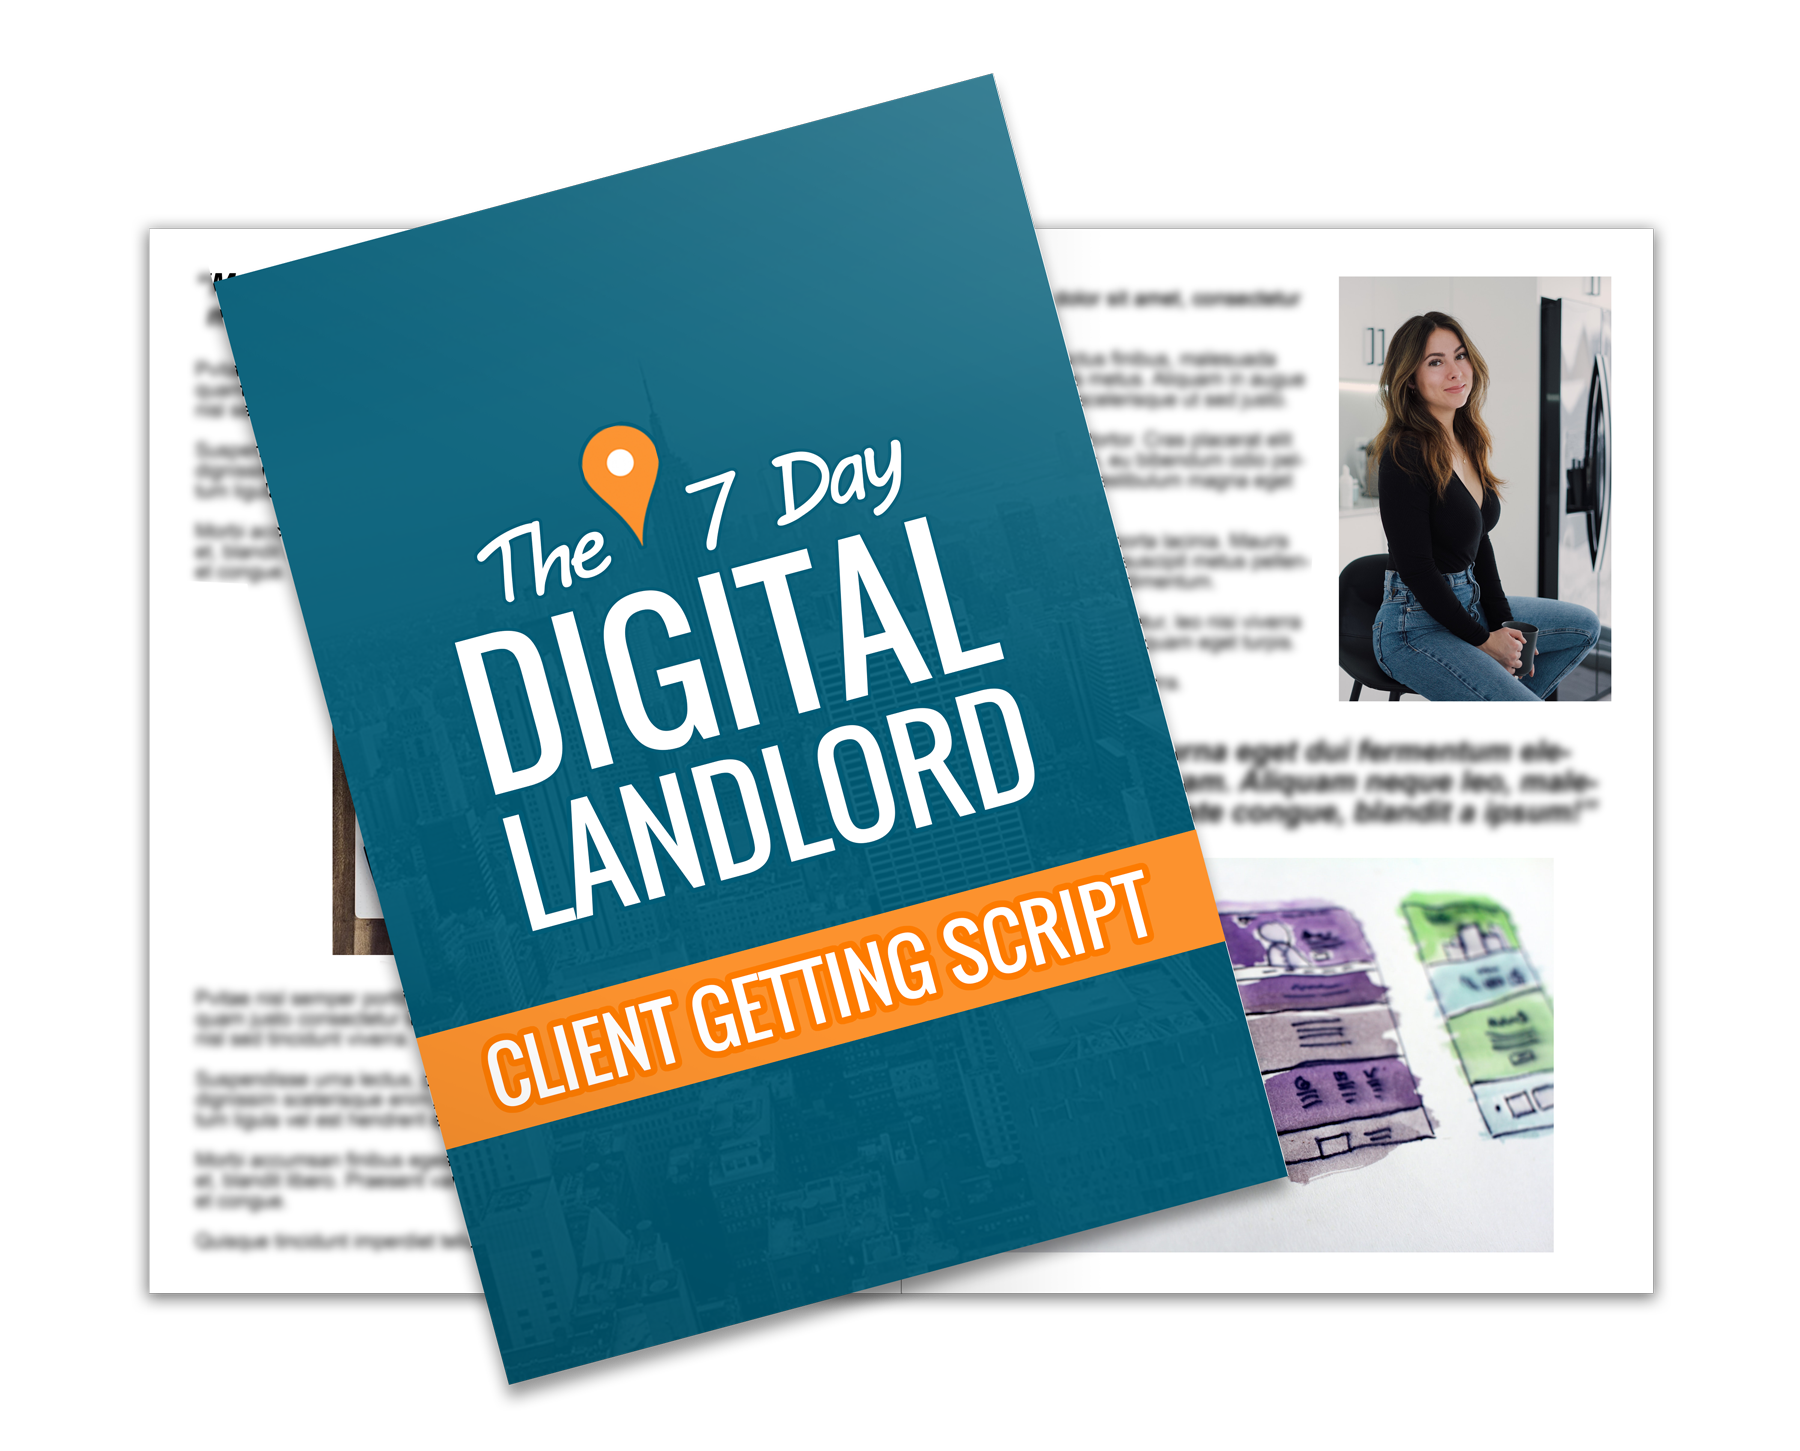 https://www.7daylandlord.com/hosted/images/26/63998394c148d8b155e549bff47d6a/ecover_scripts.png